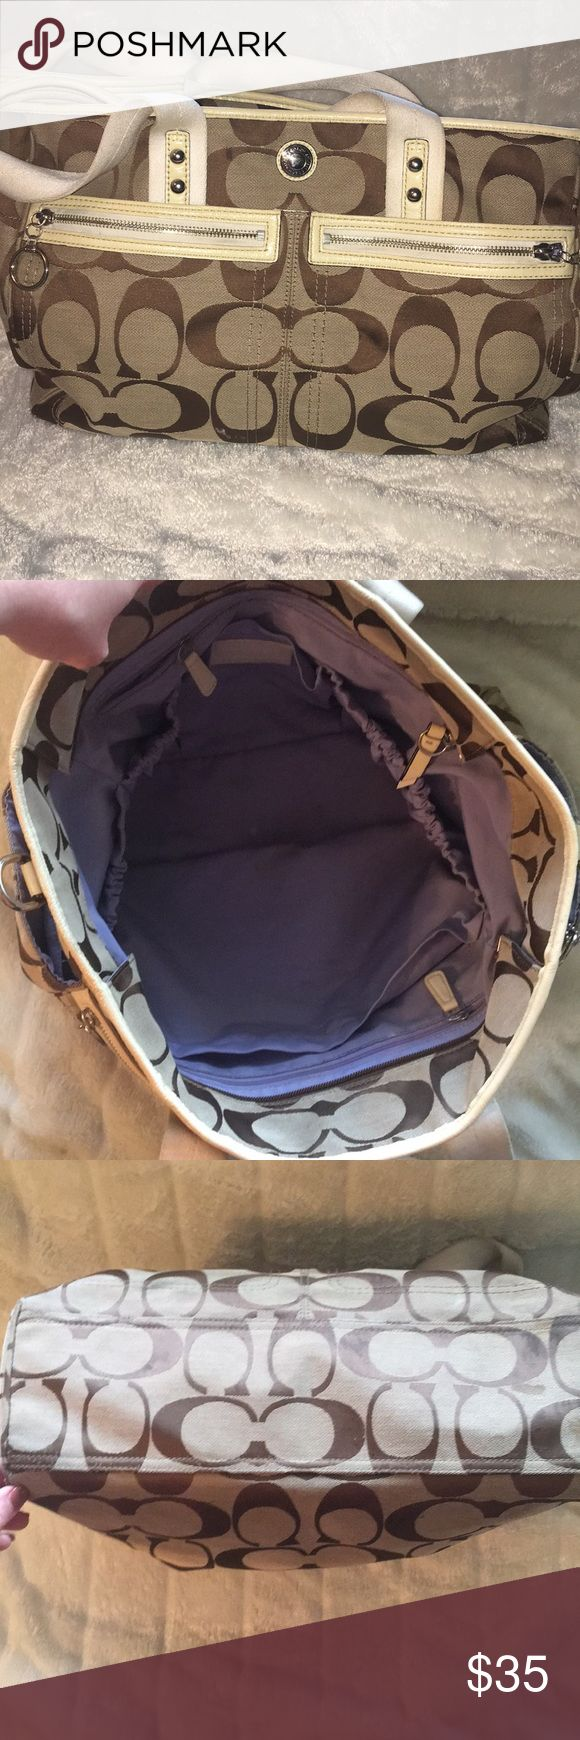 Authentic pre-owner coach diaper bag. Please read the whole description :)  This is an authentic coach diaper bag. It has been through both of my kids so it has some stains that need to be taken care of. It measures 16 in. long, 13 in deep and it's very wide. It has several spots on the inside and outside for diapers, bottles and ect.  It has no tears, but needs a good washing on the white handle.  I haven't tried very hard to clean it, other than throwing it in the washer after I was done…